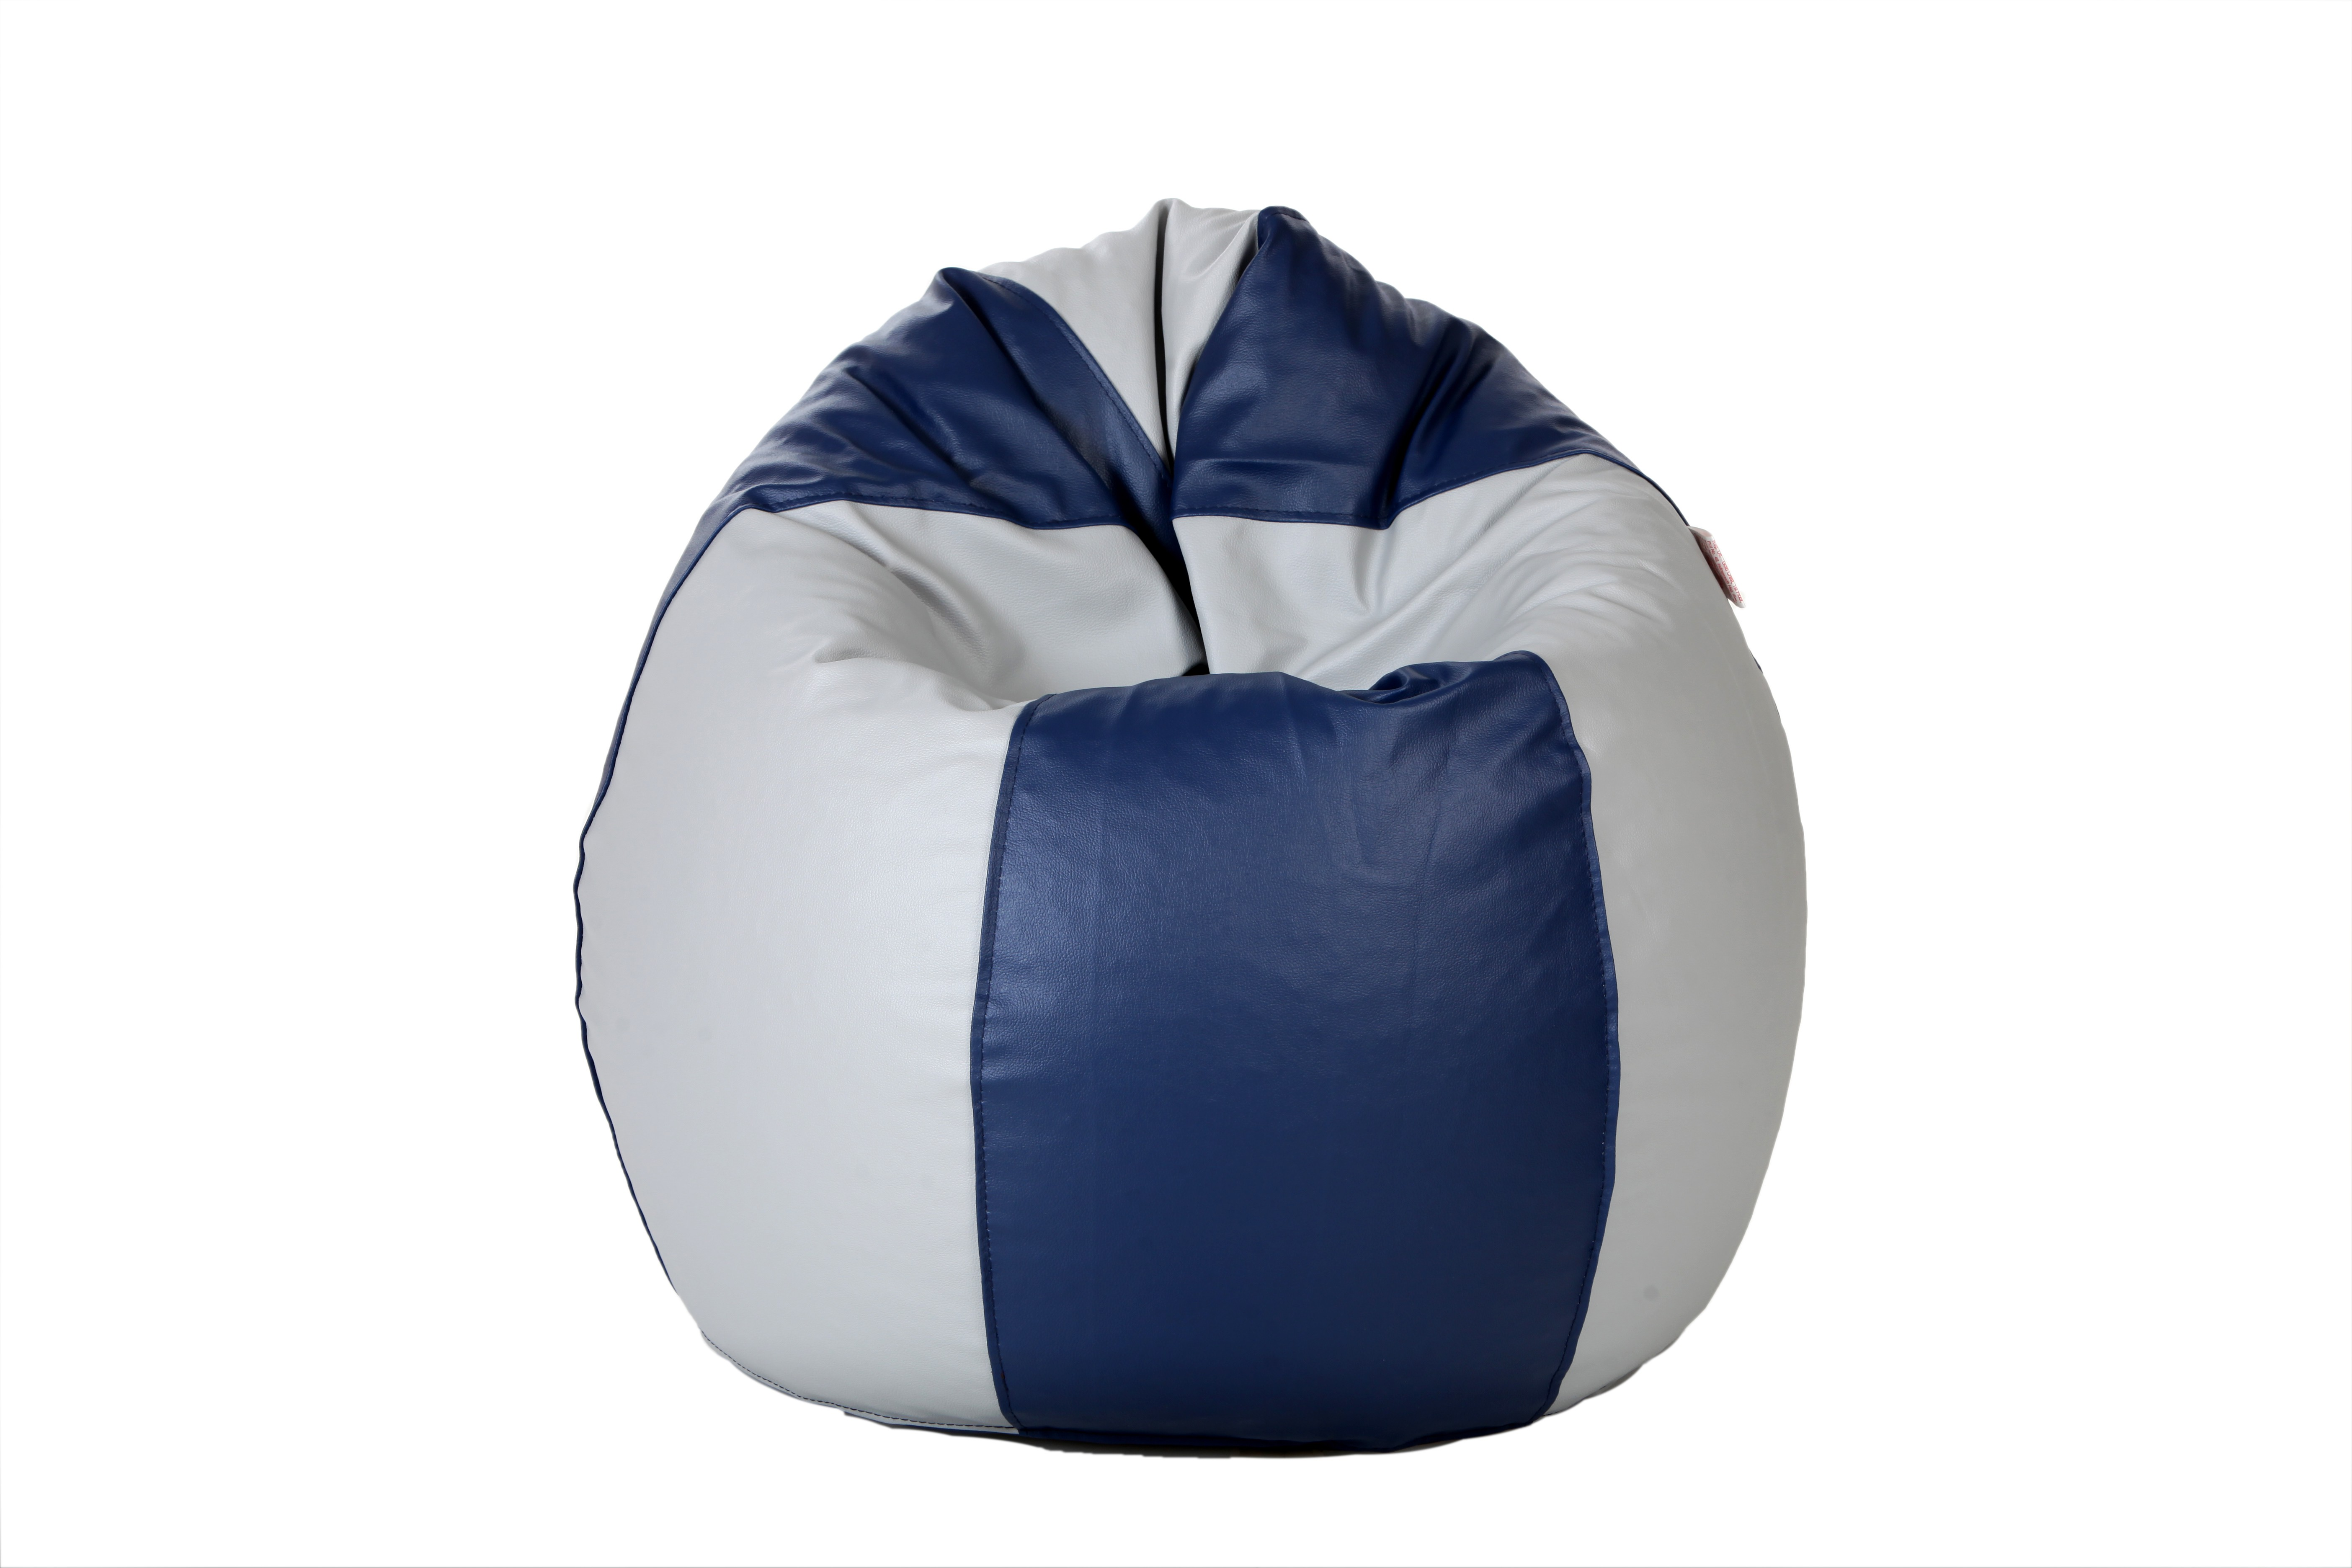 View Comfy Bean Bags XXL Bean Bag Cover(Blue, Grey) Furniture (Comfy Bean Bags)